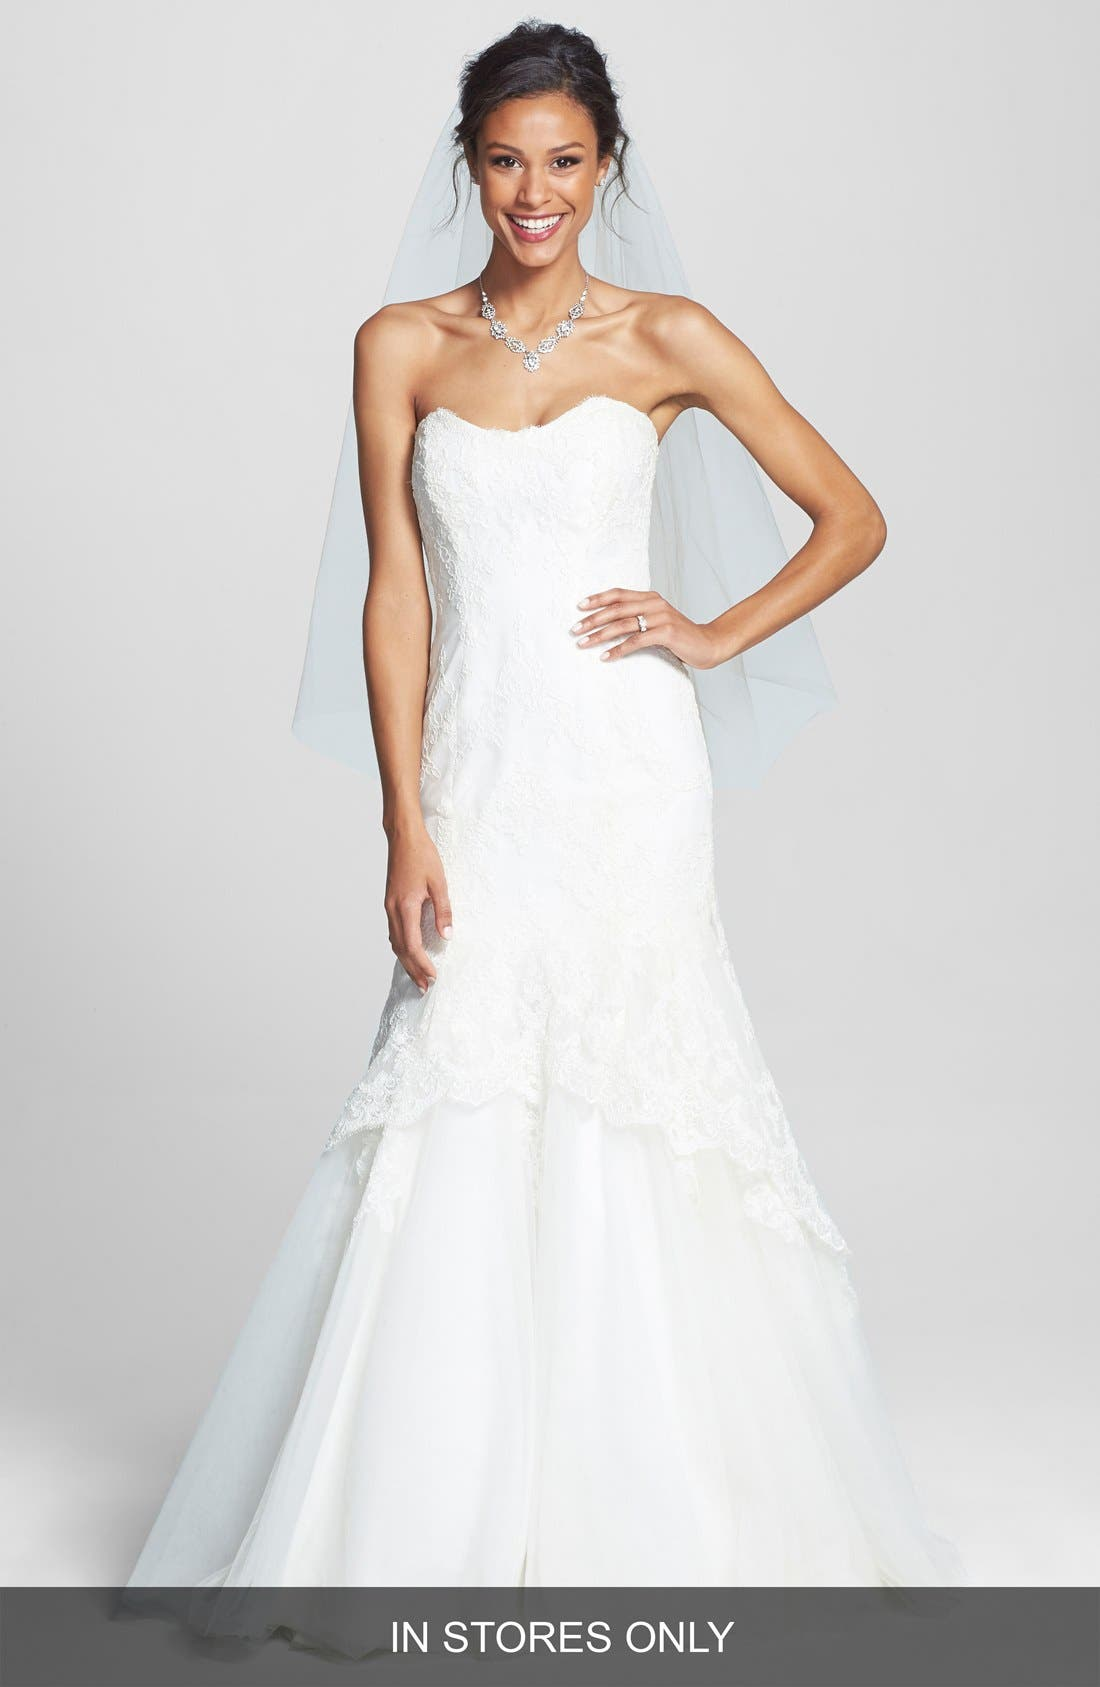 BLISS Monique Lhuillier Lace Overlay Tulle Trumpet Wedding Dress (In Stores Only)